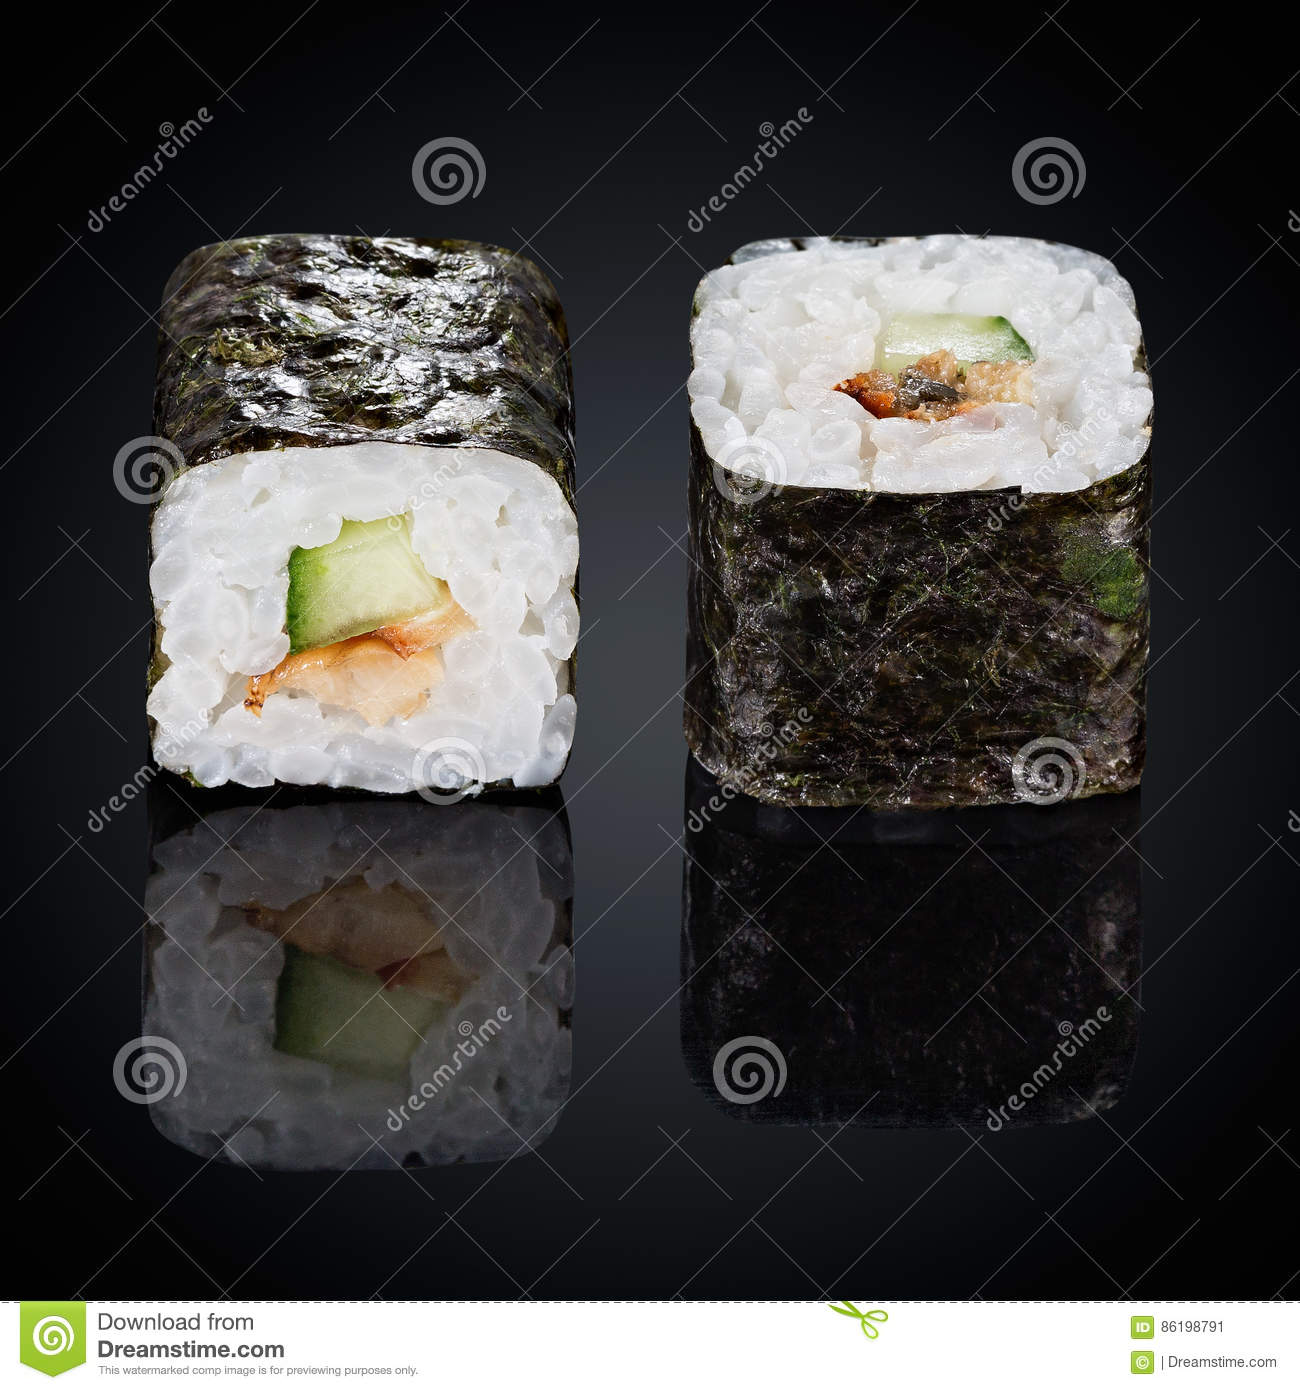 Cerdito colonia Ver insectos  Kappa Maki Rolls With Cucumber And Spicy Sauce Stock Image - Image of  healthy, cuisine: 86198791